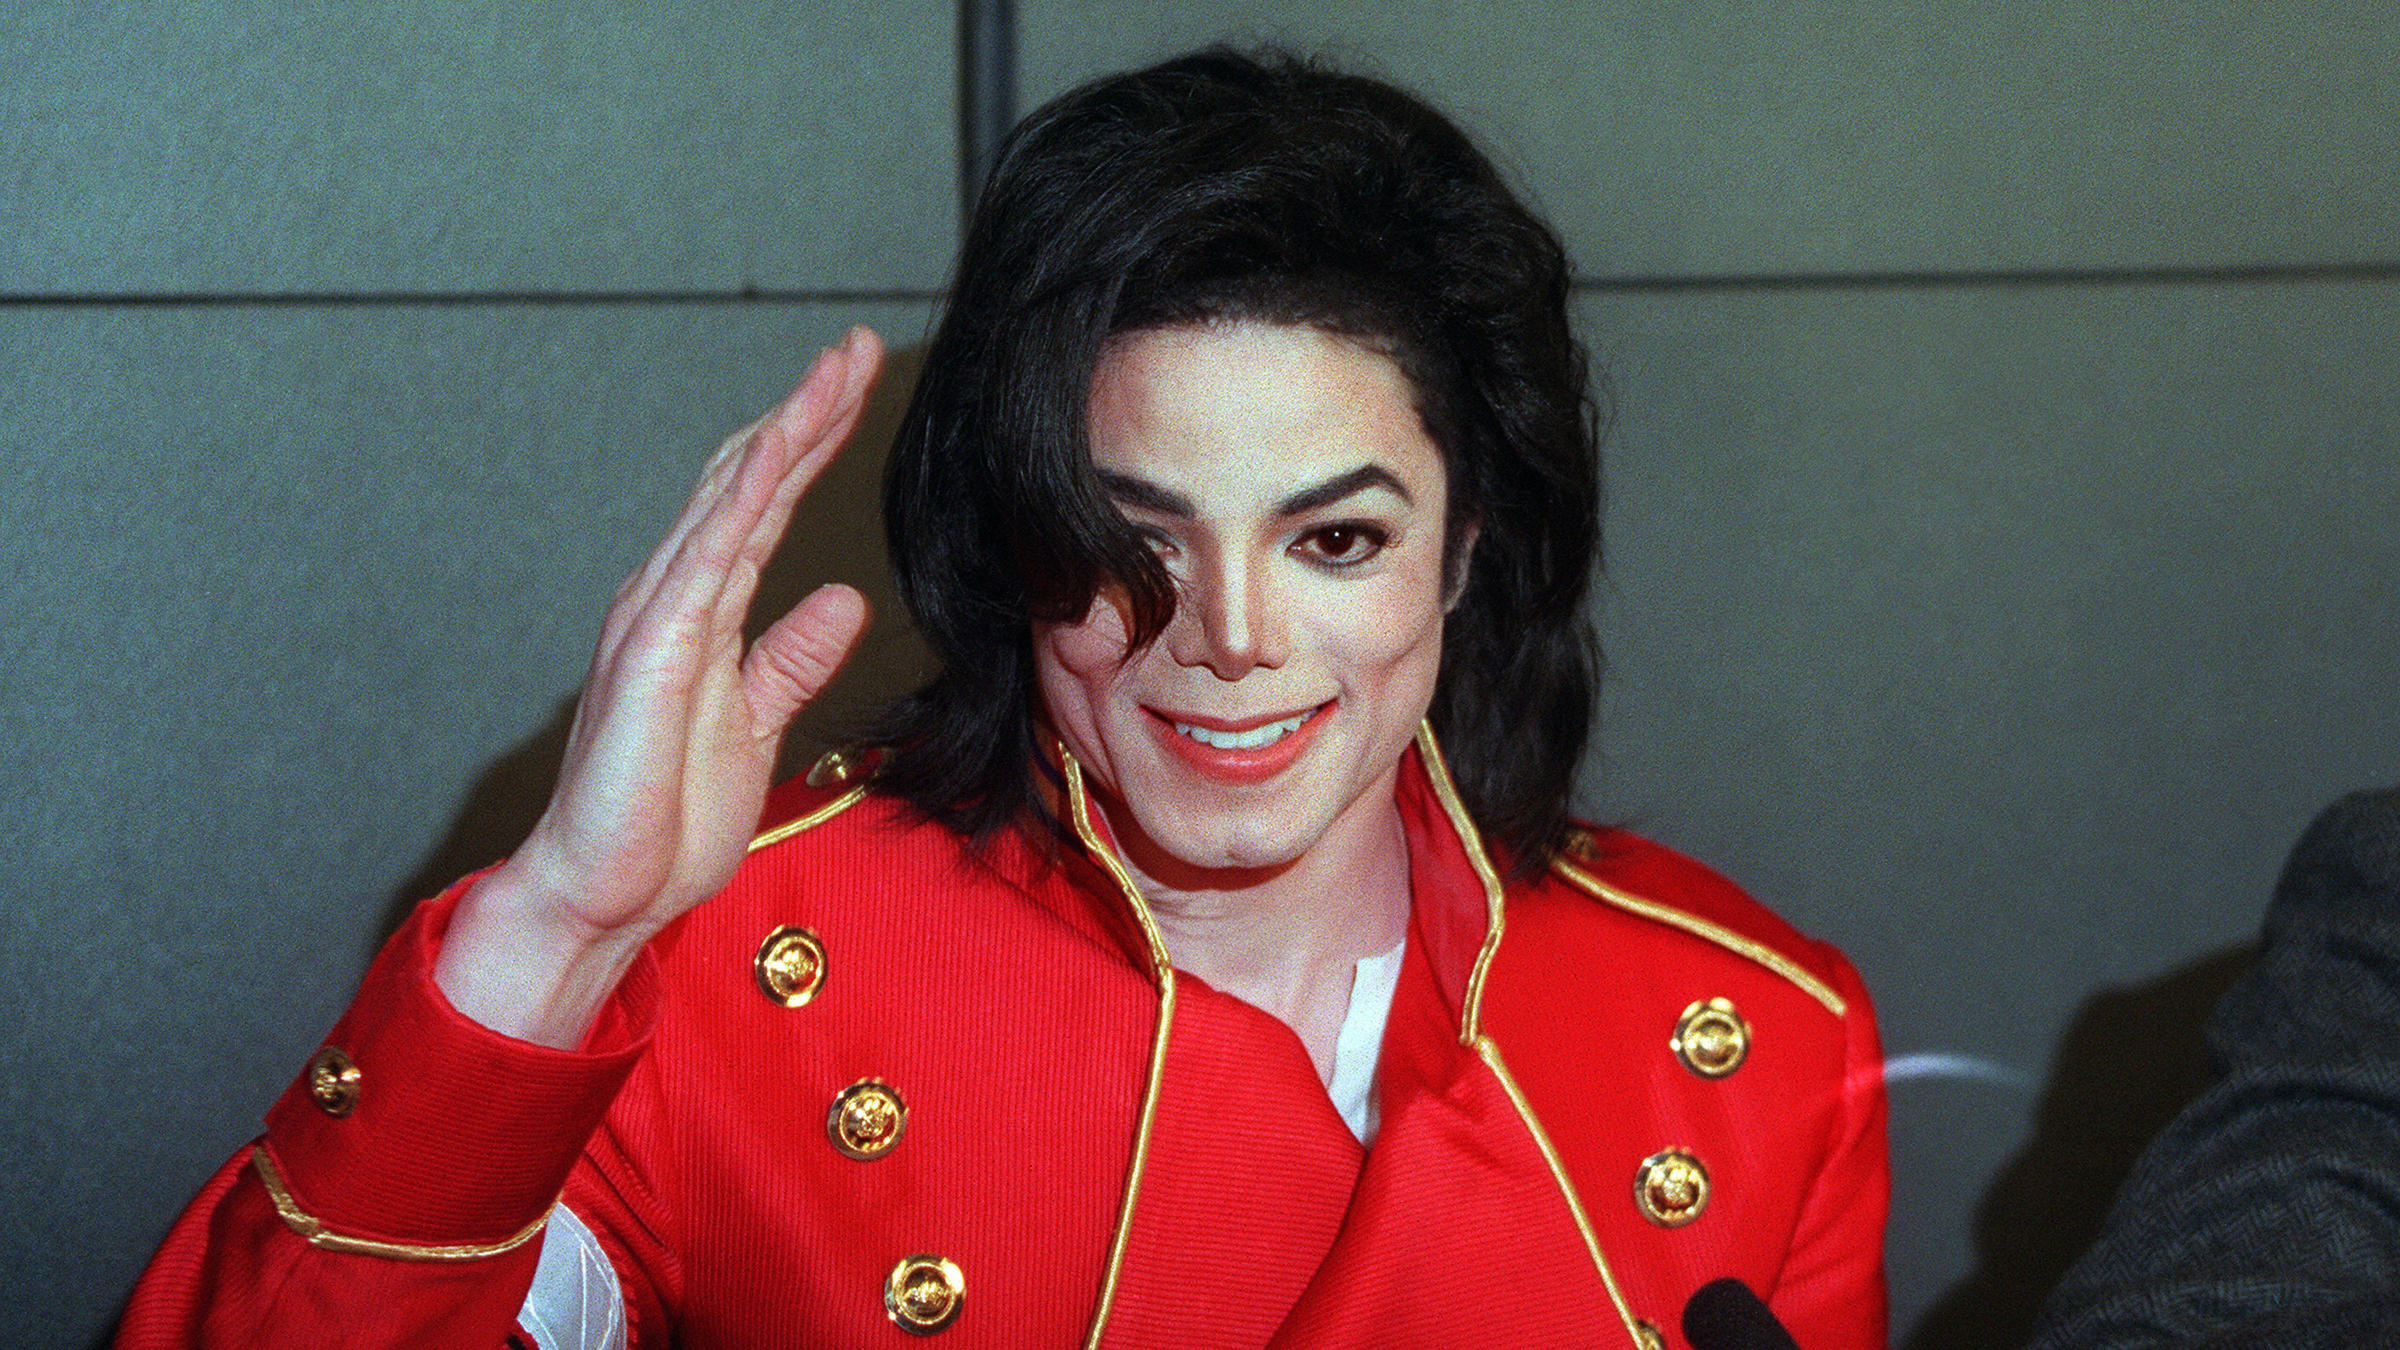 The Strange Story Of Those Supposedly Fake Michael Jackson Songs